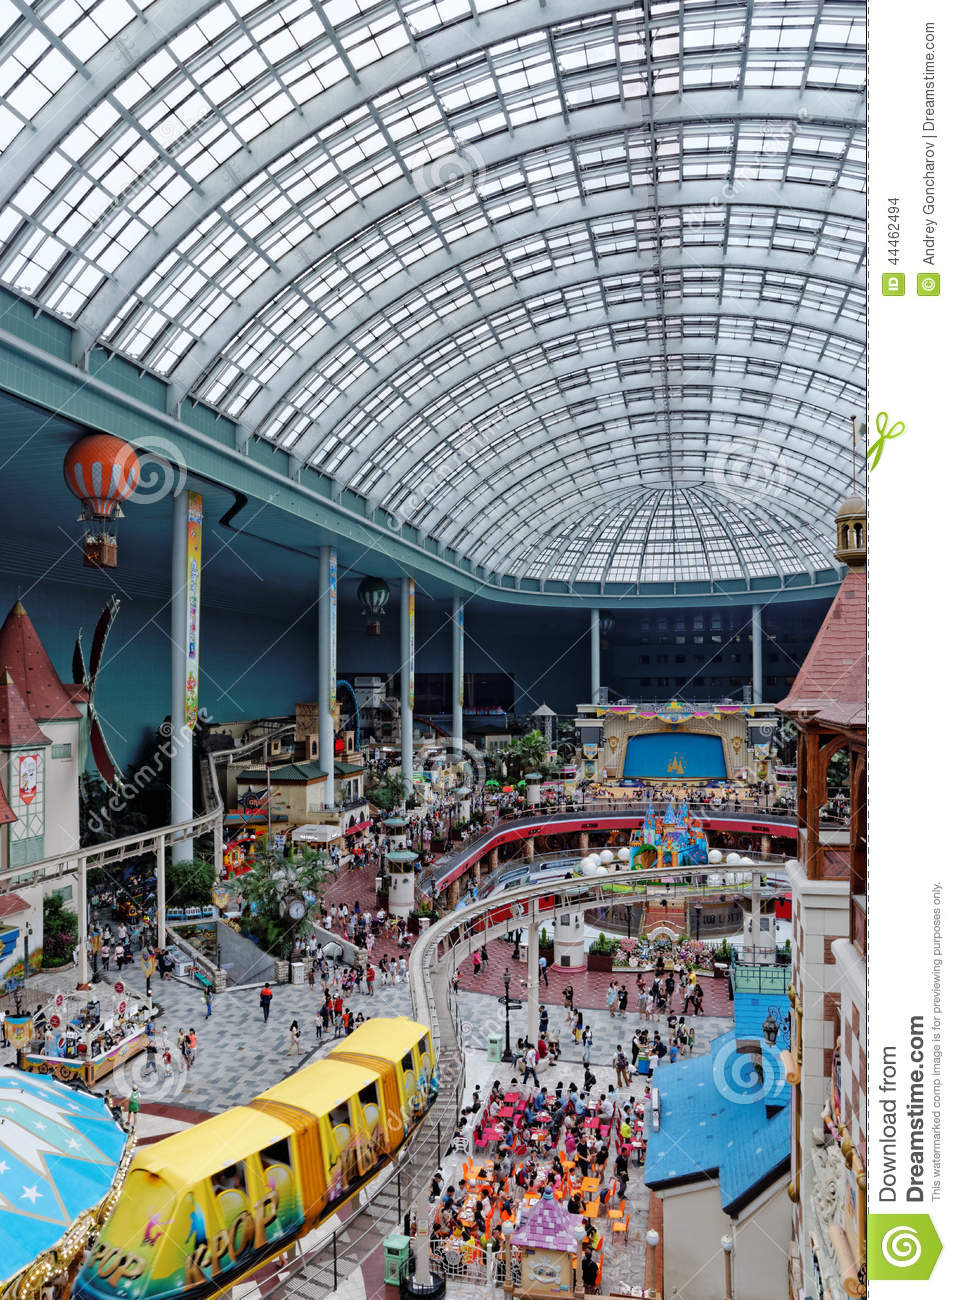 Lotte world theme park seoul korea editorial stock image image download comp gumiabroncs Images